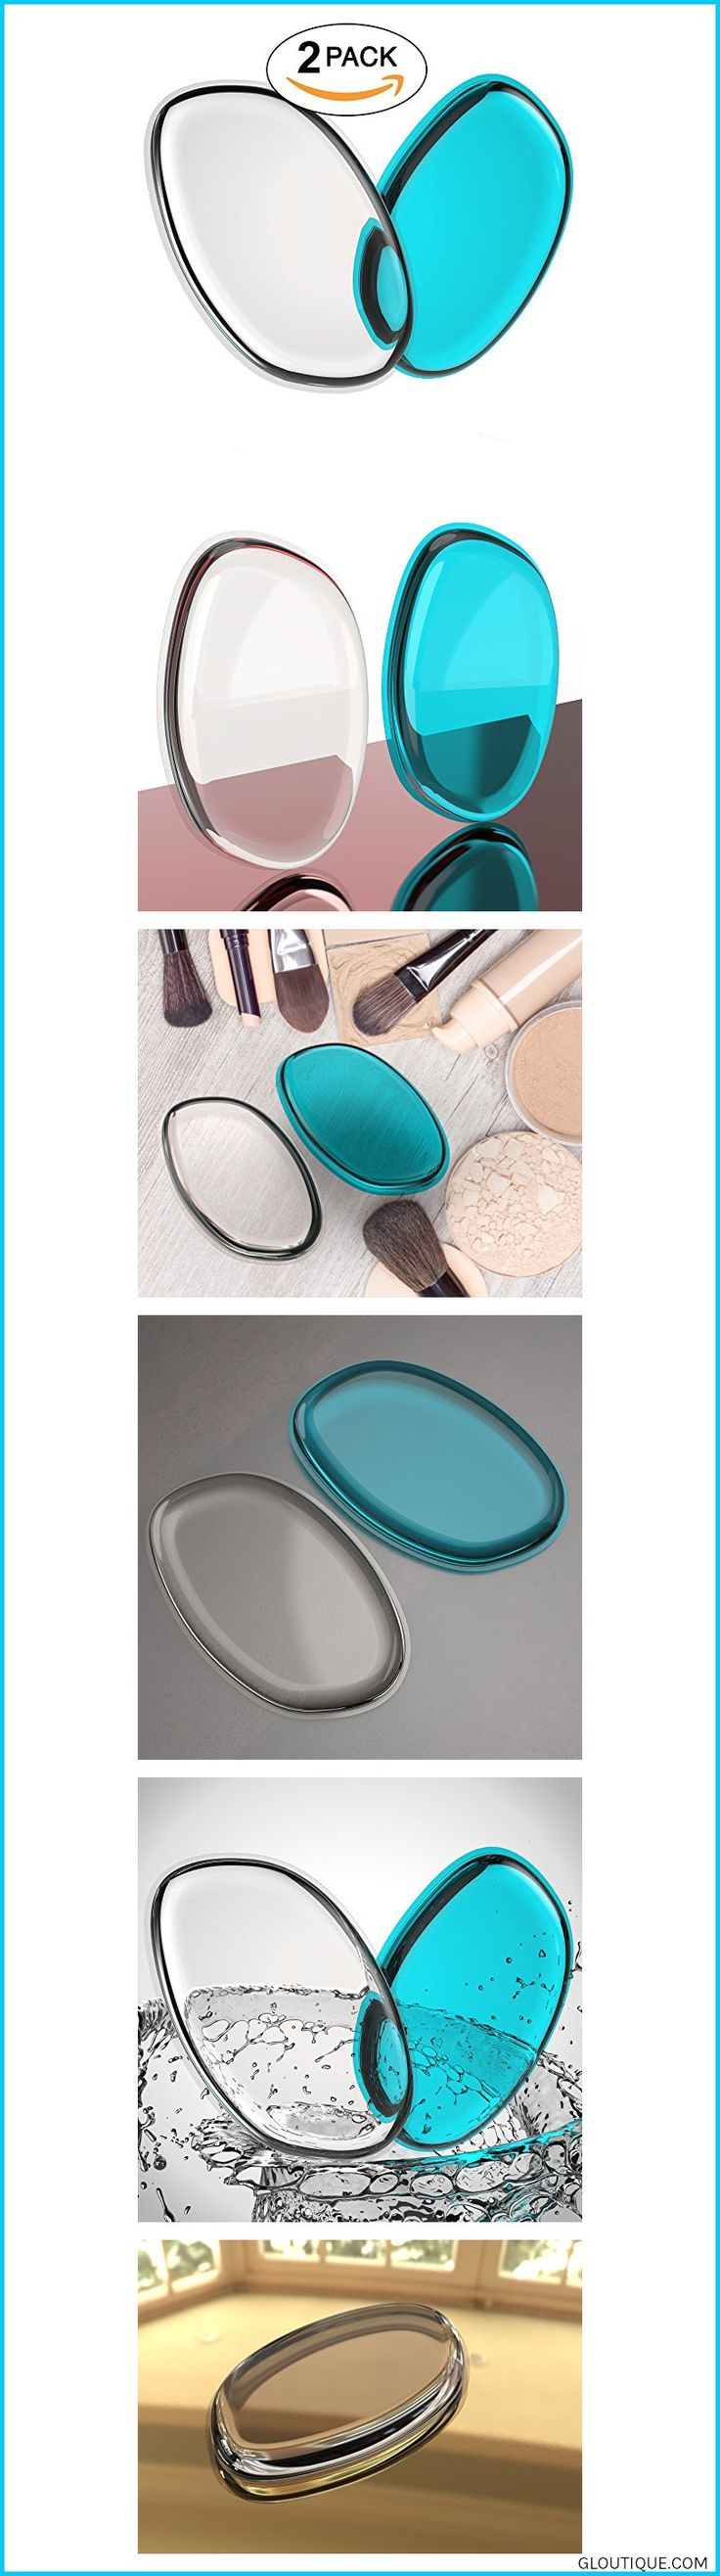 DO YOUR ENTIRE FACE WITH LESS THAN HALF THE PRODUCT - No more waste! A foundation sponge that preserves your valuable makeup products - this silicone #makeuptools #makeupartist #makeupbyme #organic #eyes #lips 2 Pack Premium Silicone Makeup Sponge - Beauty Sponge for Makeup, Concealer and Foundation - Make Up Blender Sponges, Foundation Applicator for Cosmetic Blending - Compare to SiliSponge #2 #Pack #Premium #Silicone #Makeup #Sponge #- #Beauty #Sponge #for #Makeup, #Concealer #and #